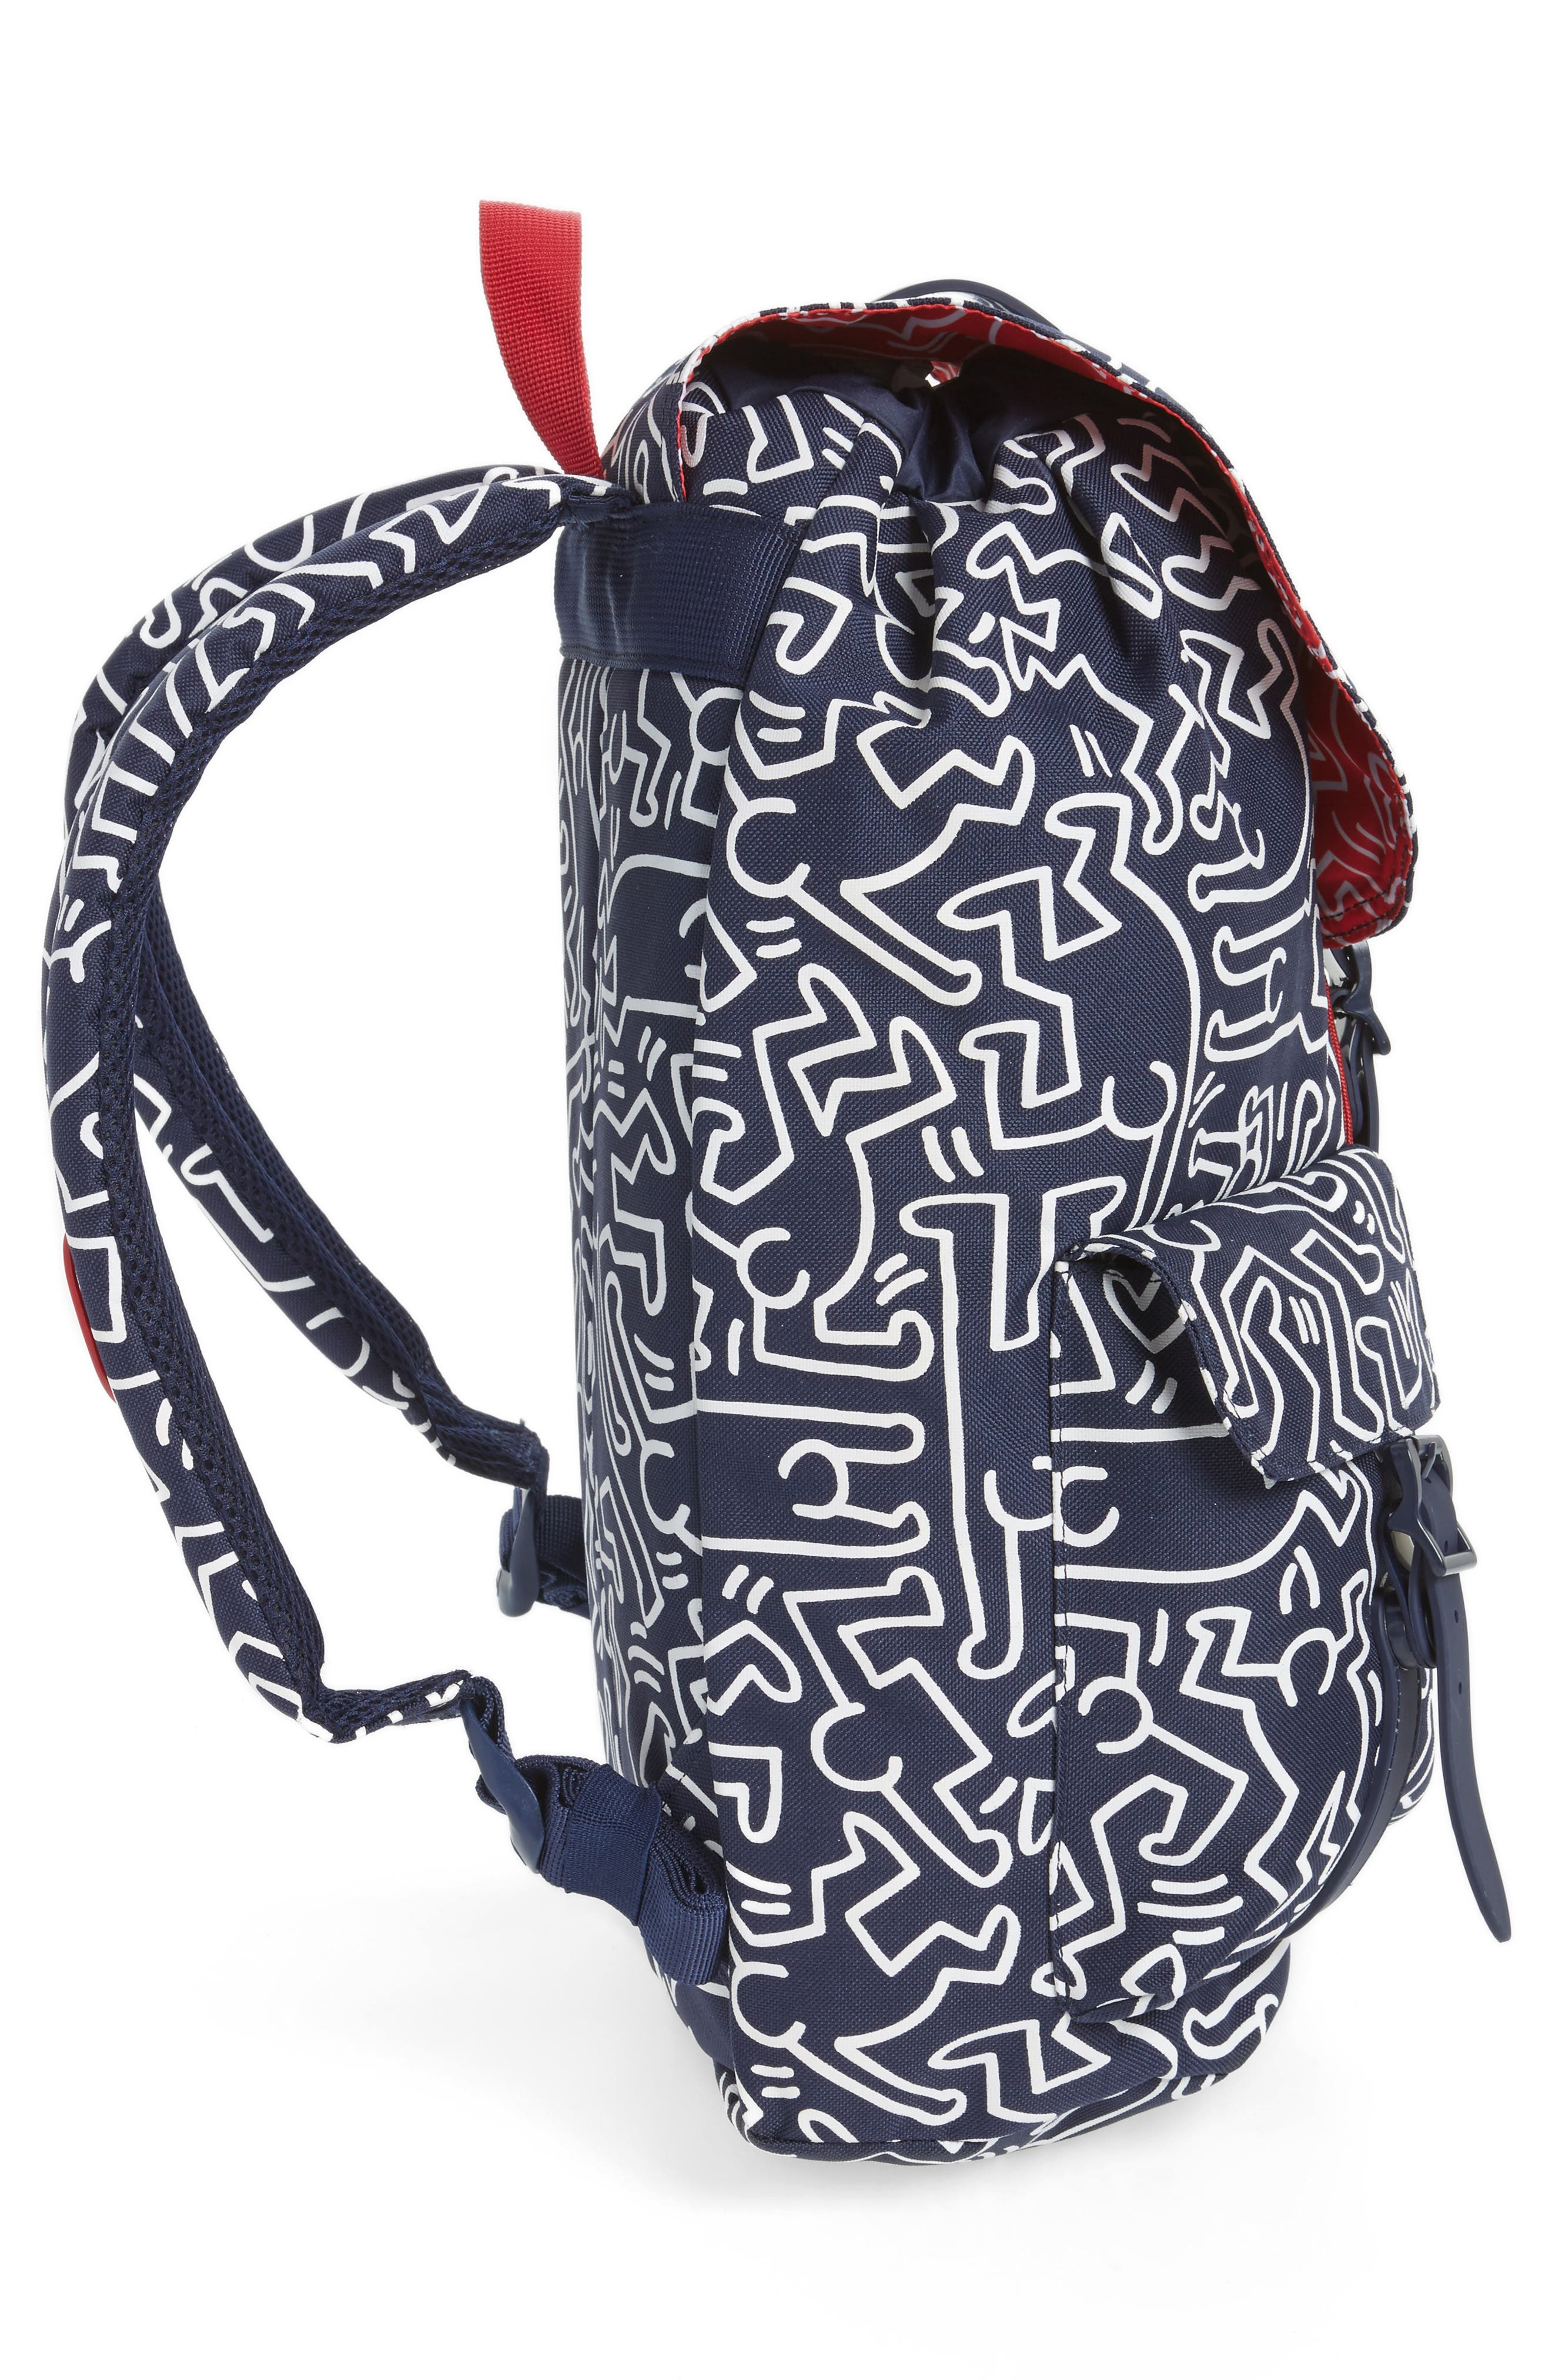 Dawson Keith Haring Backpack,                             Alternate thumbnail 5, color,                             477